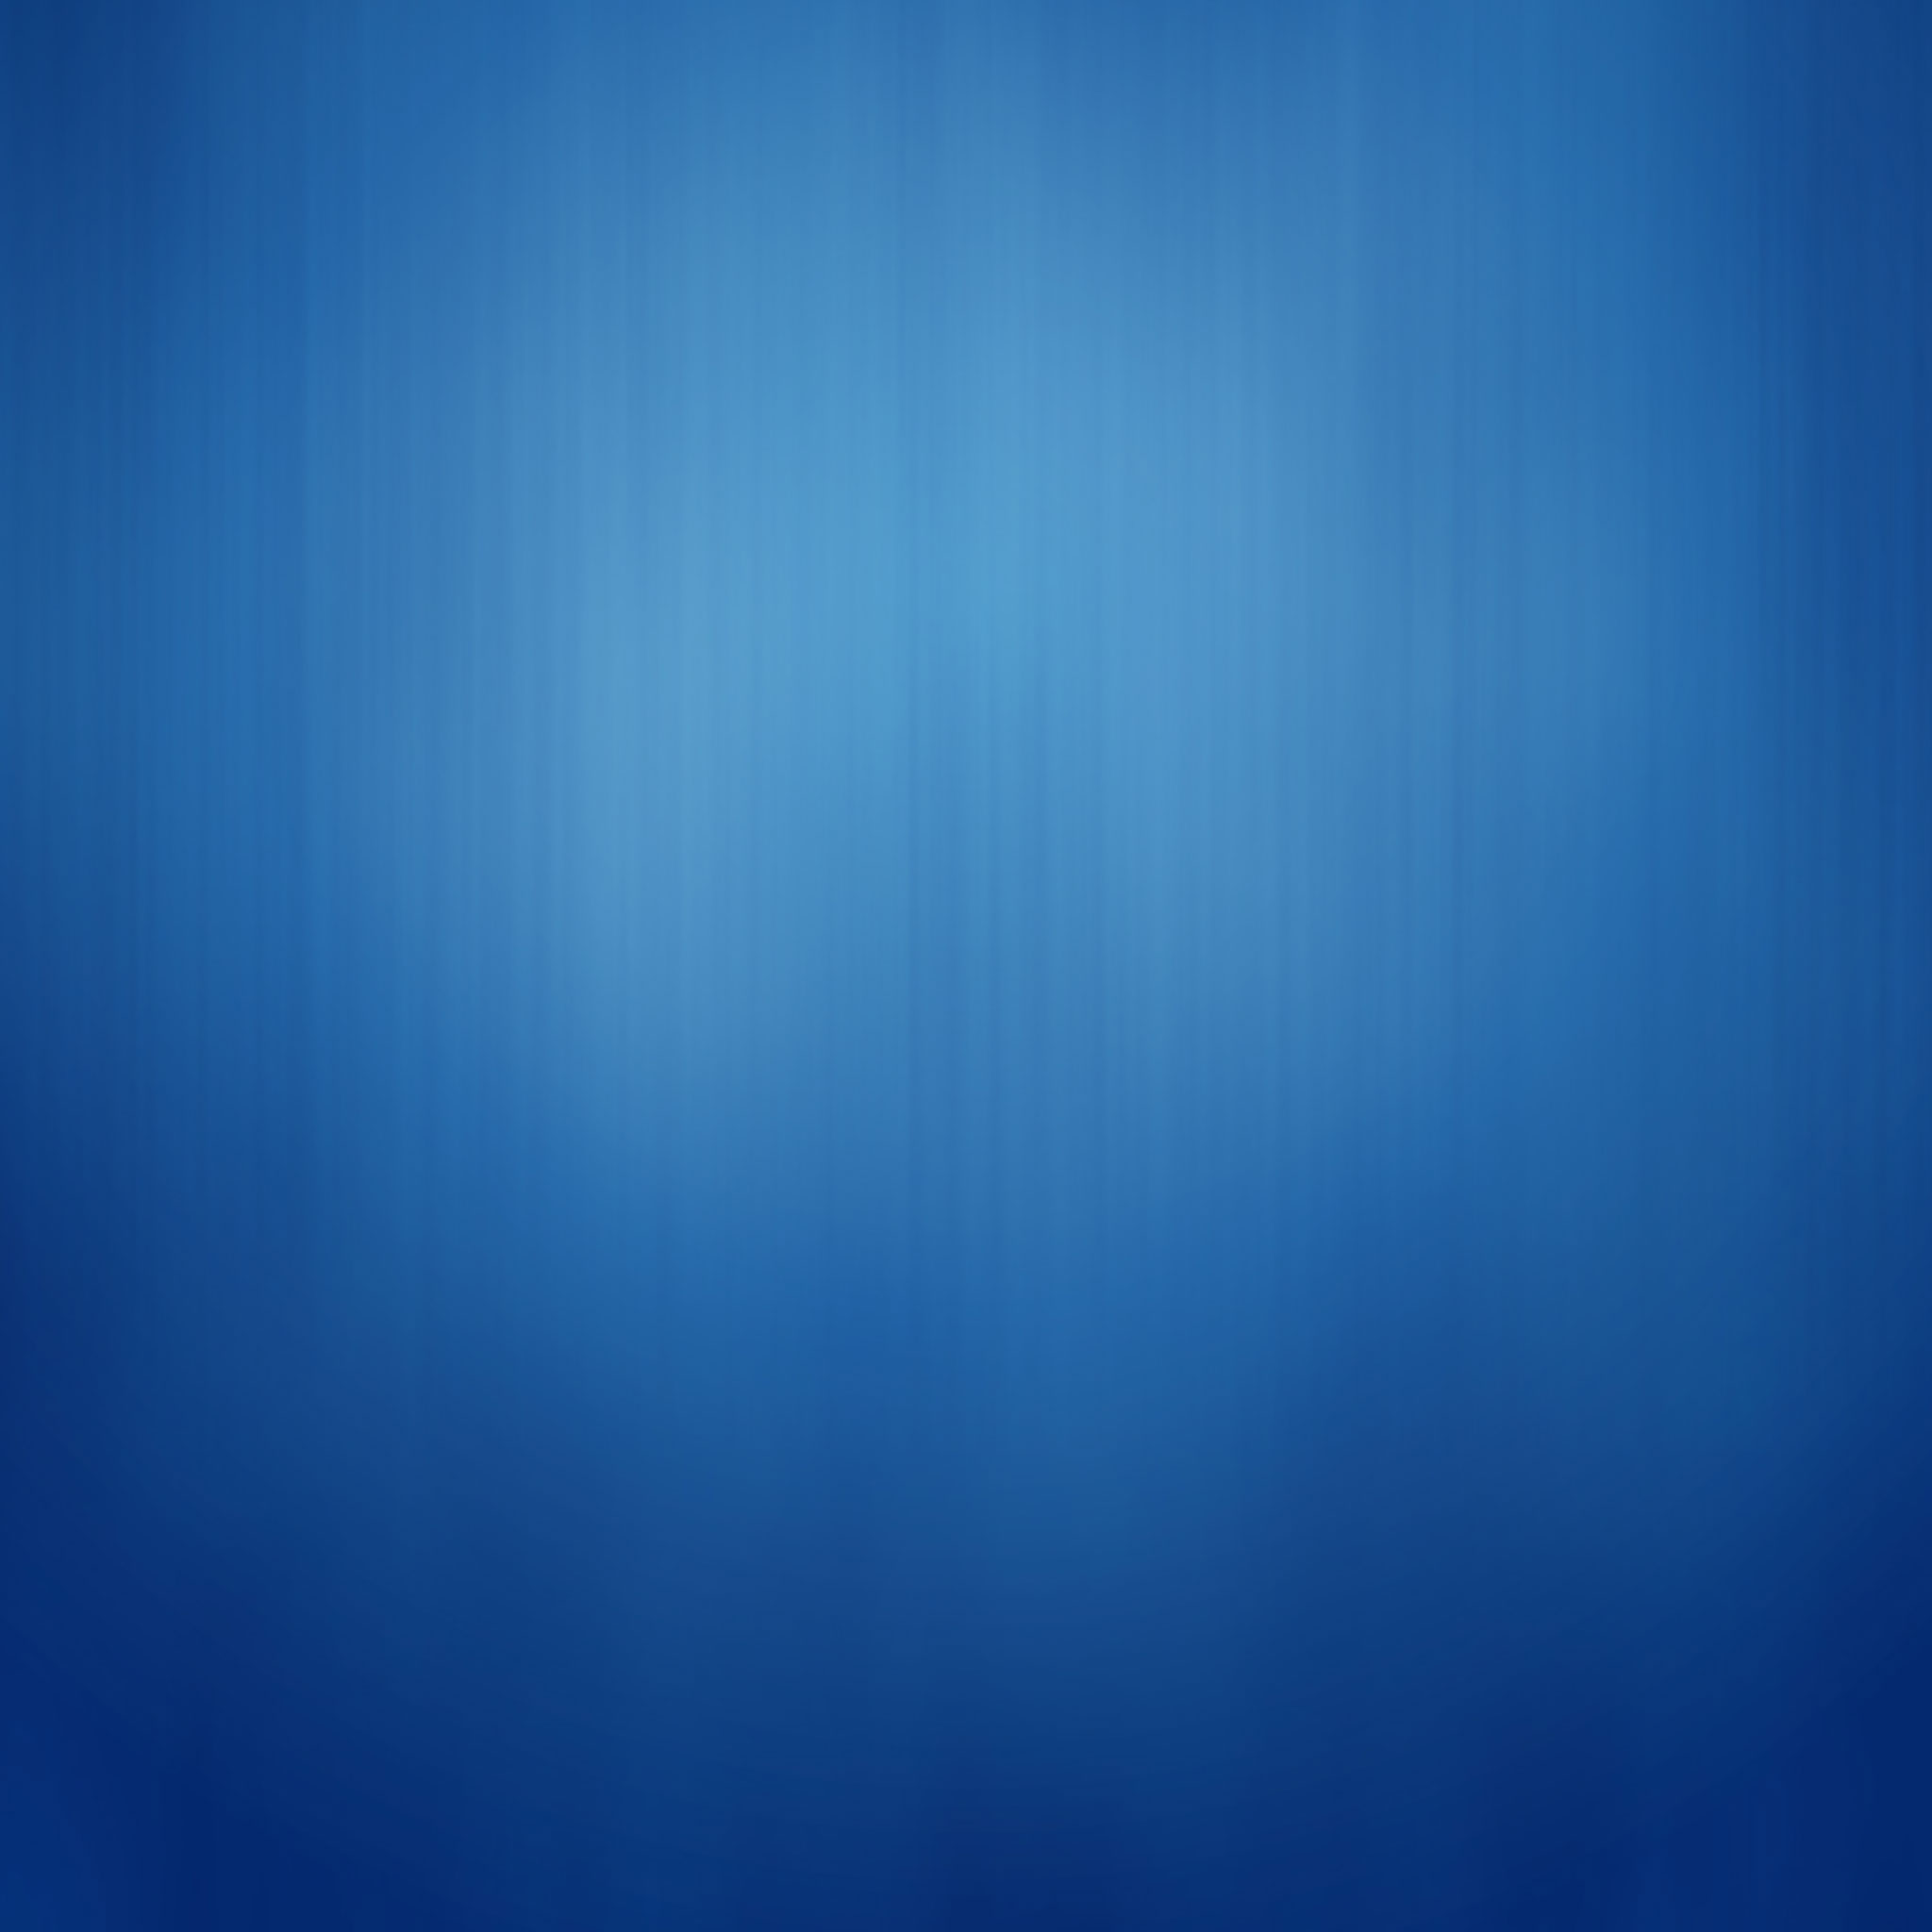 Blue PC Wallpapers - Top Free Blue PC Backgrounds ... |Masculine Blue Background